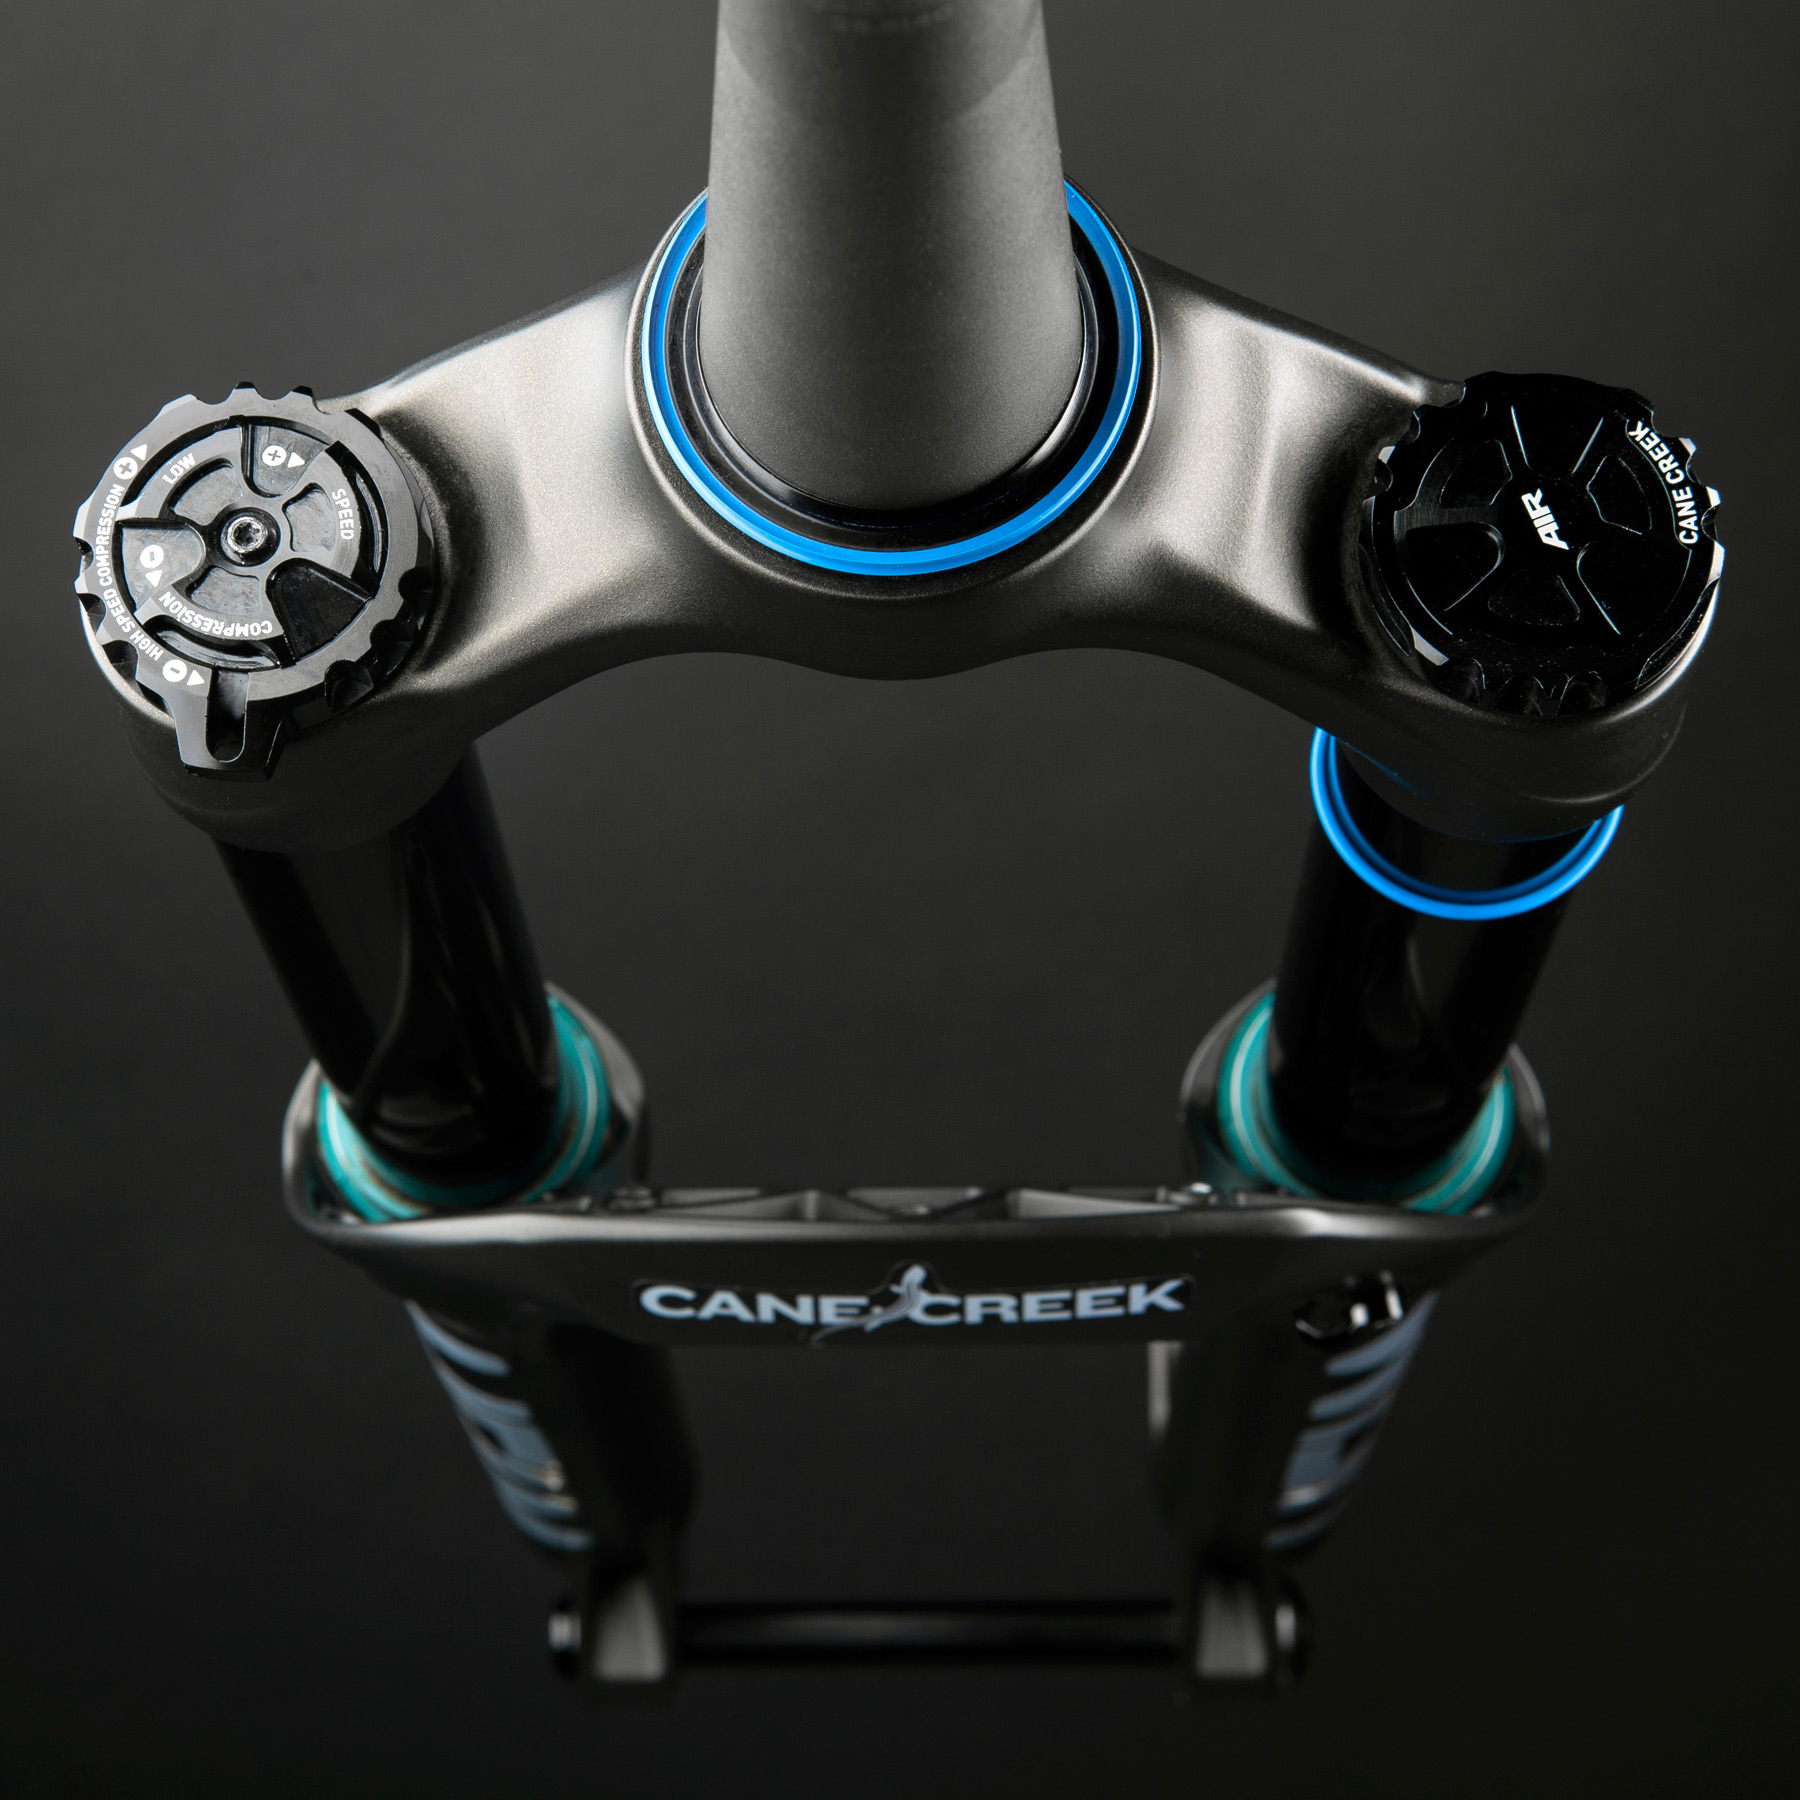 Image of Cane Creek Helm Air MKII 27.5 Inch Fork - 170mm - 44mm Offset - Tapered - 15x110mm Boost - matte black